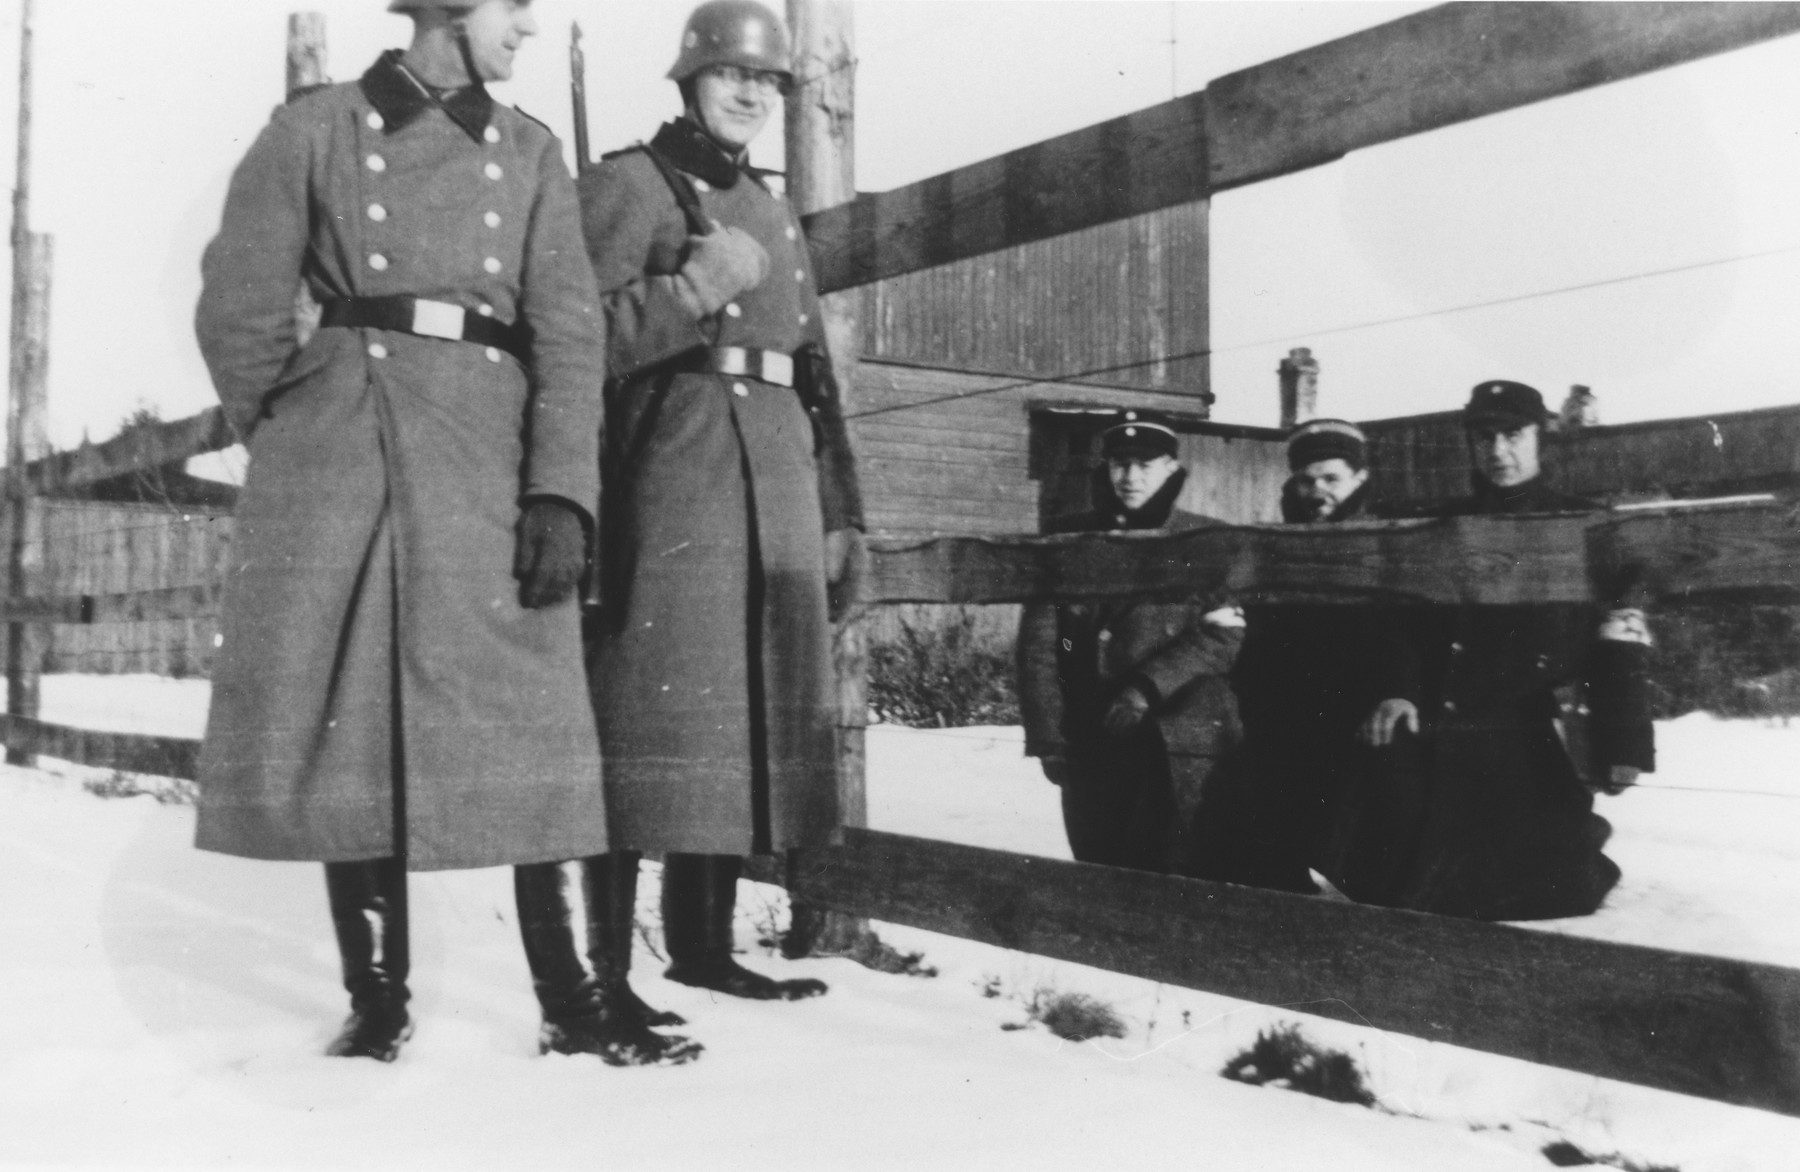 Two members of Police Battalion 101 who are guarding the perimeter of the Lodz ghetto, view three Jewish policemen kneeling opposite them on the other side of the fence.   One image from a photograph album belonging to a member of Police Battalion 101.